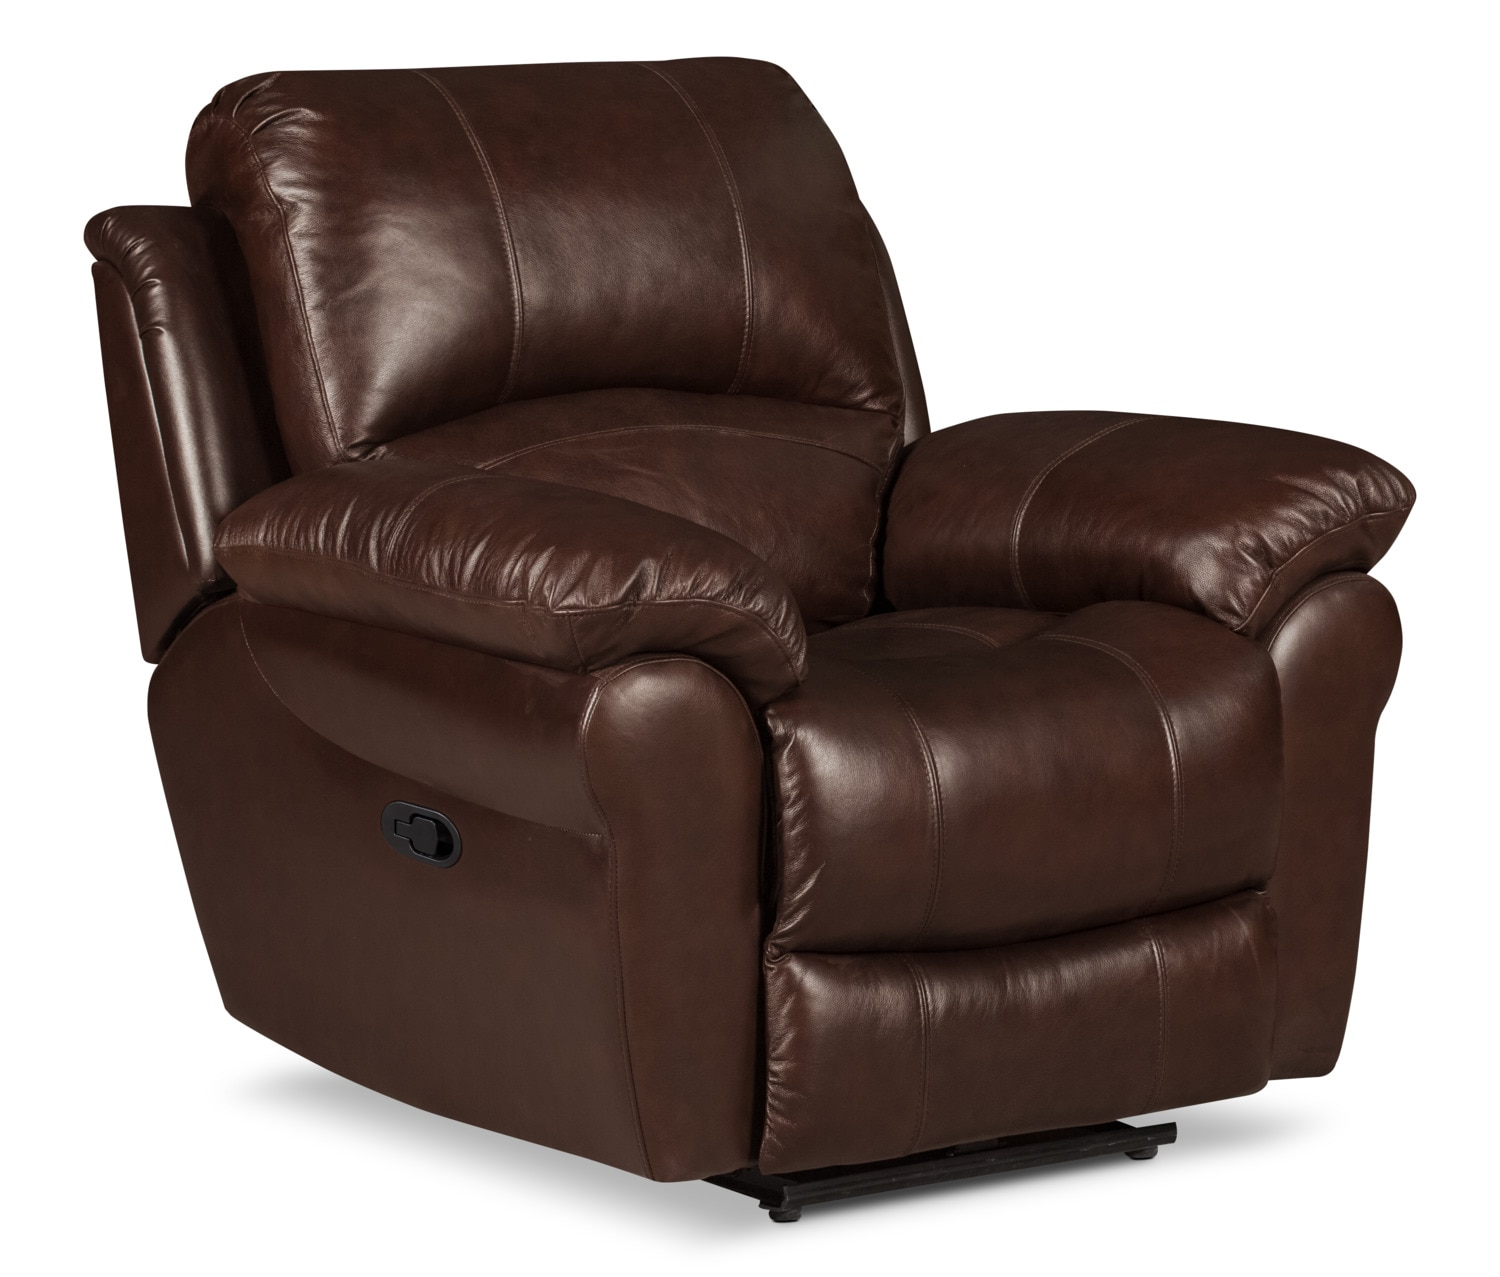 Real Leather Recliner Chairs Kobe Genuine Leather Reclining Chair Brown United